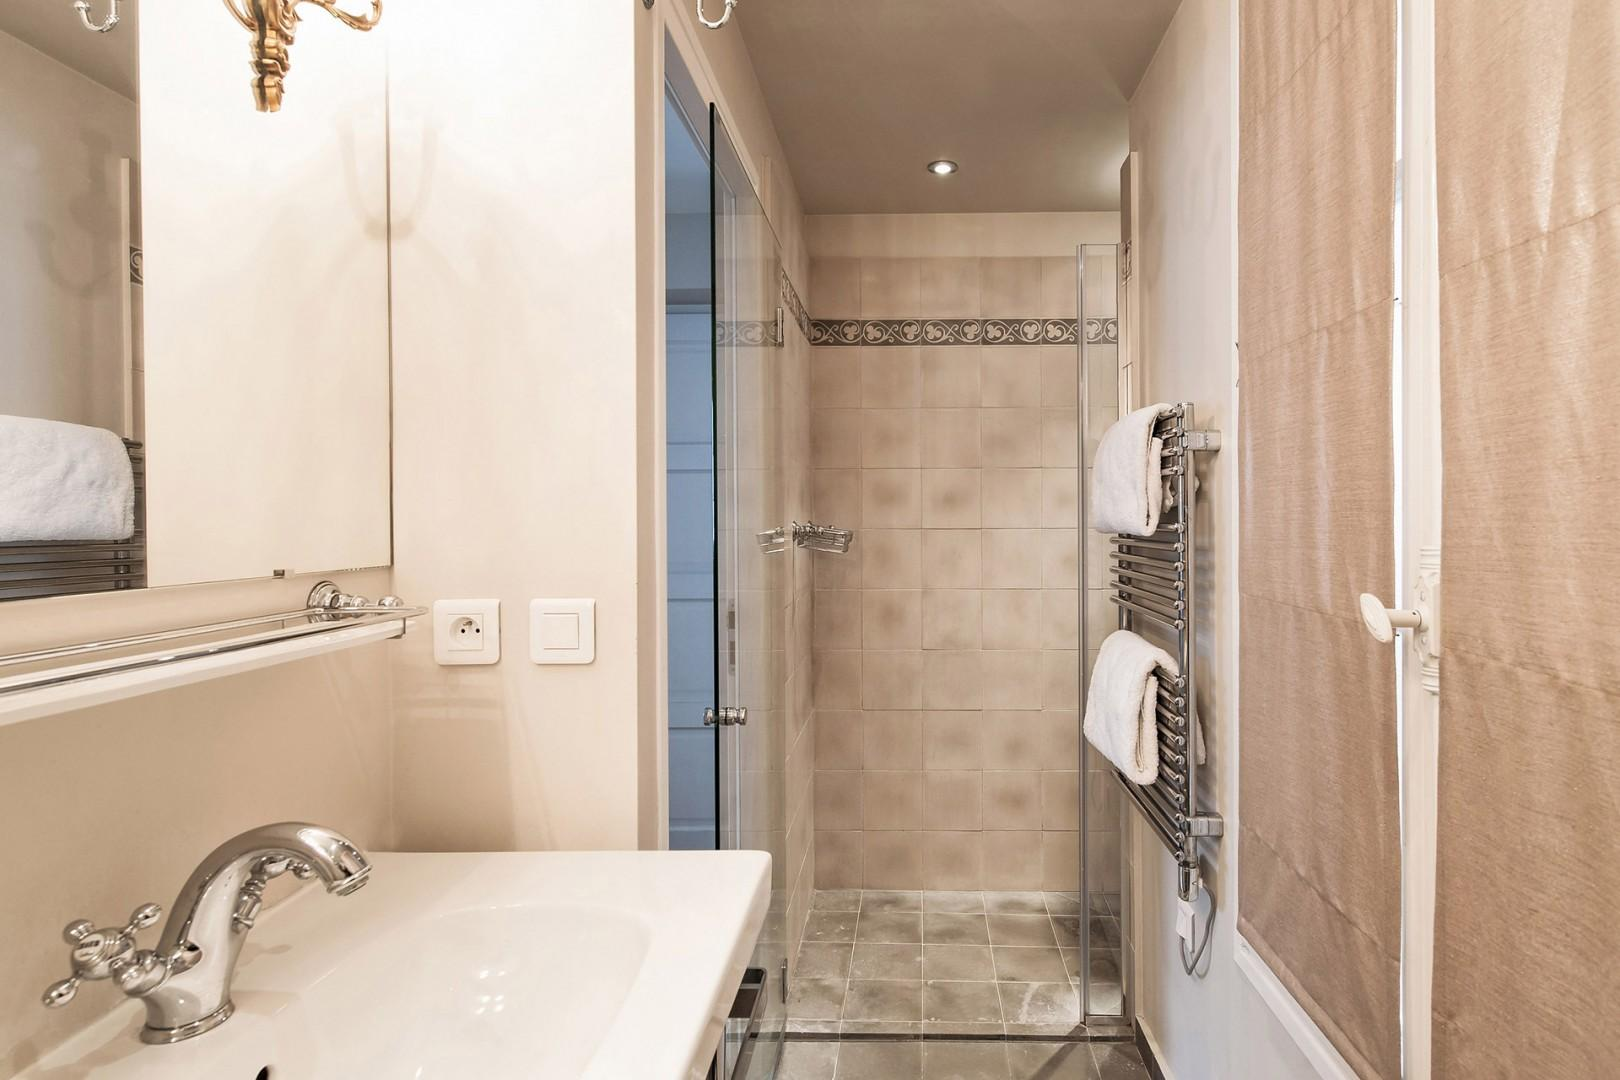 Start your day with an energizing shower in this modern bathroom!